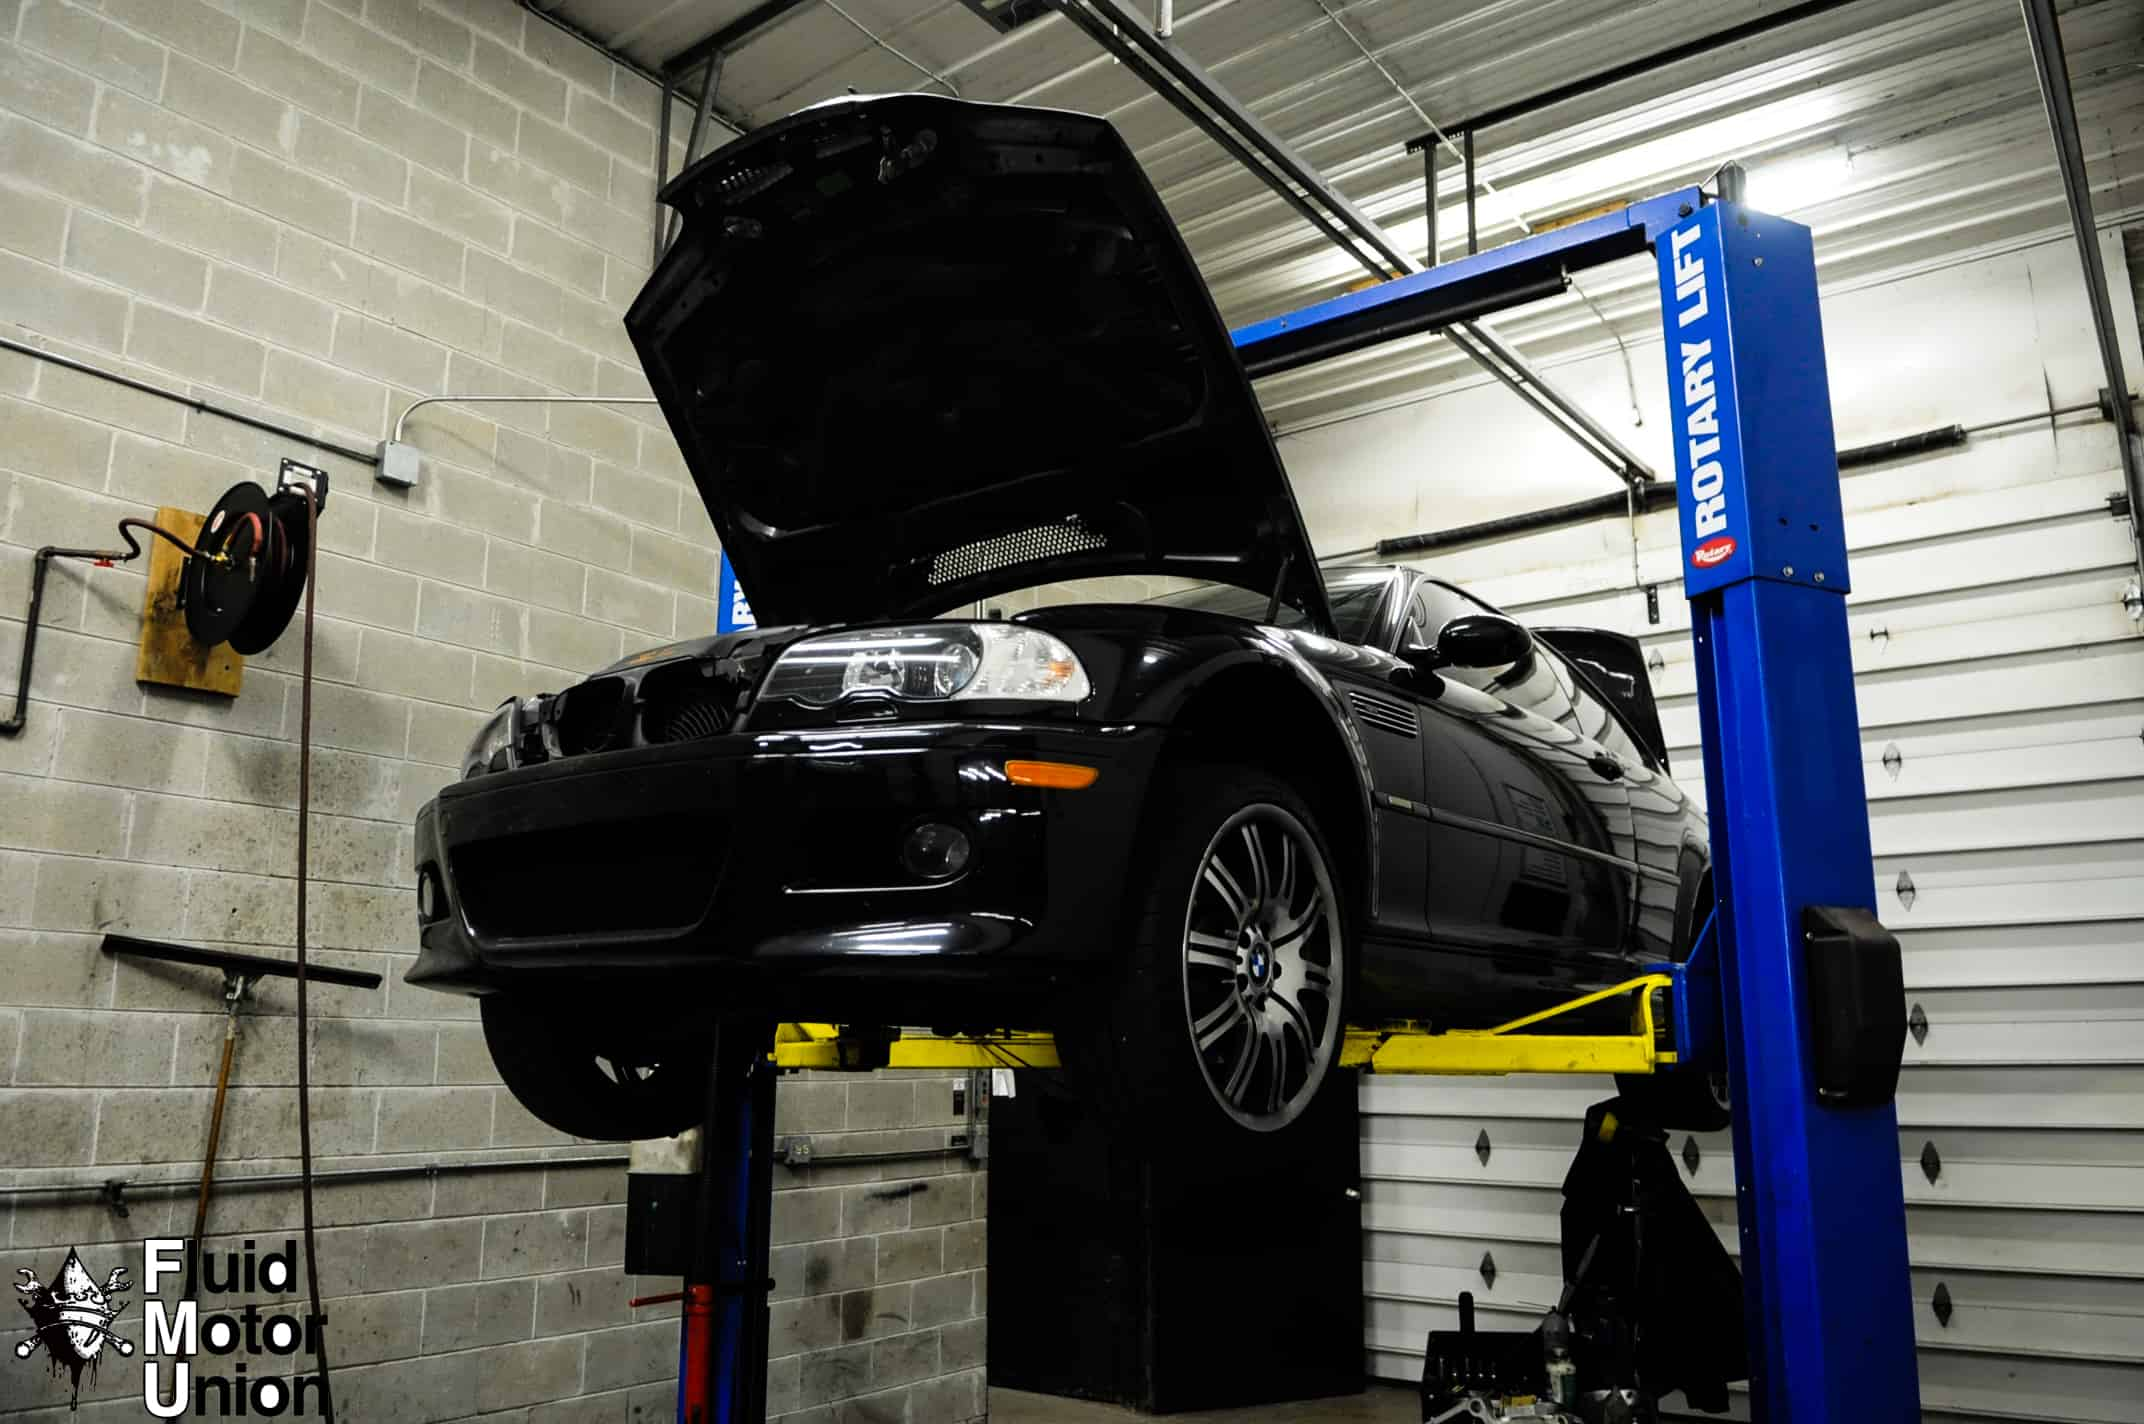 BMW E46 M3 Clutch Replacement using OE Sachs parts (7)